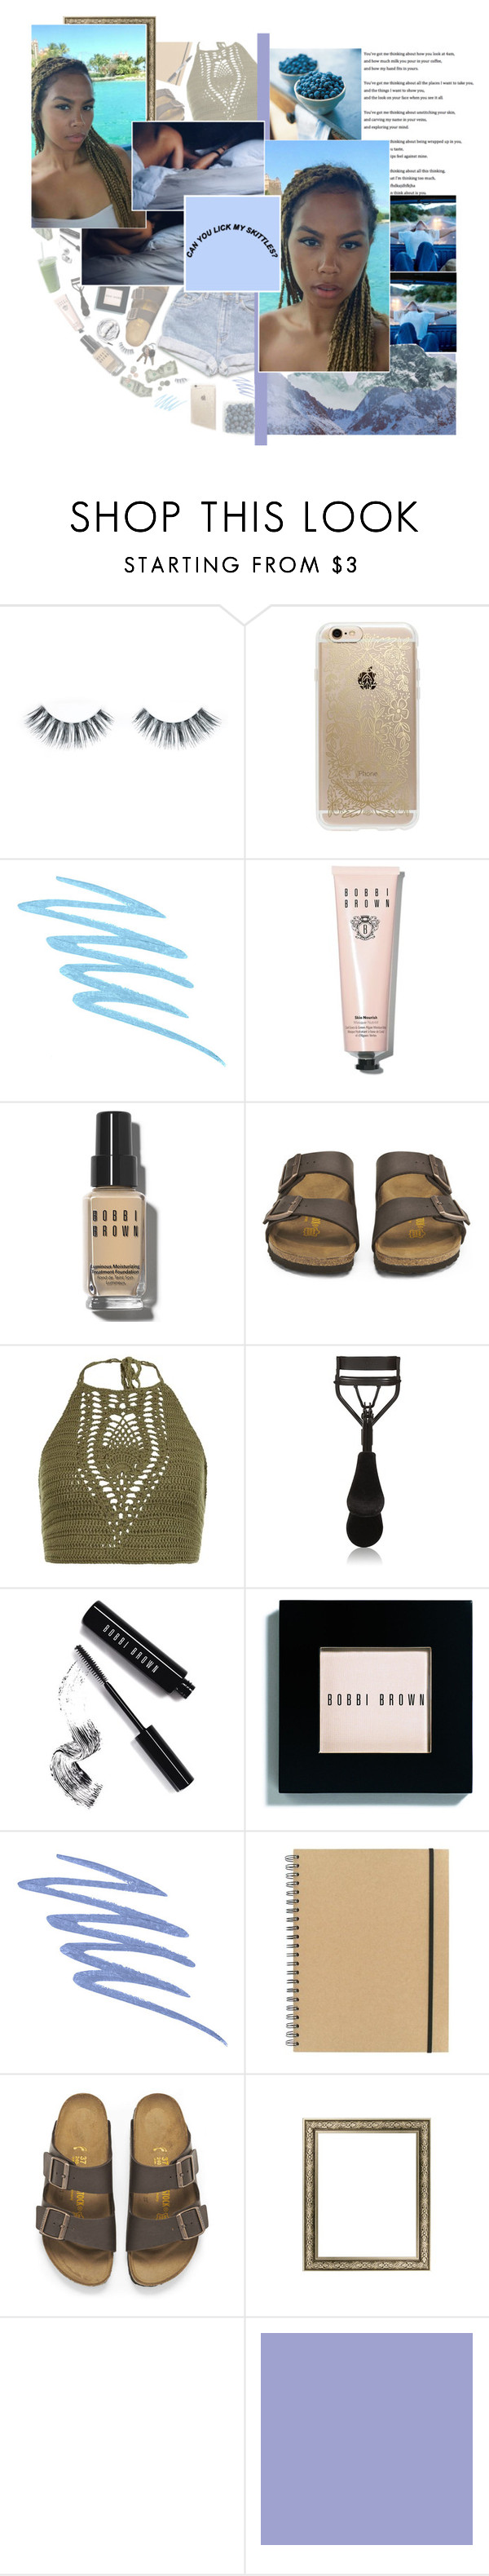 """""""I dedicate.."""" by m-iyagi ❤ liked on Polyvore featuring Napoleon Perdis, Rifle Paper Co, Mally, Bobbi Brown Cosmetics, Birkenstock, New Look, Eyeko, Stila, Paperchase and Sharpie"""